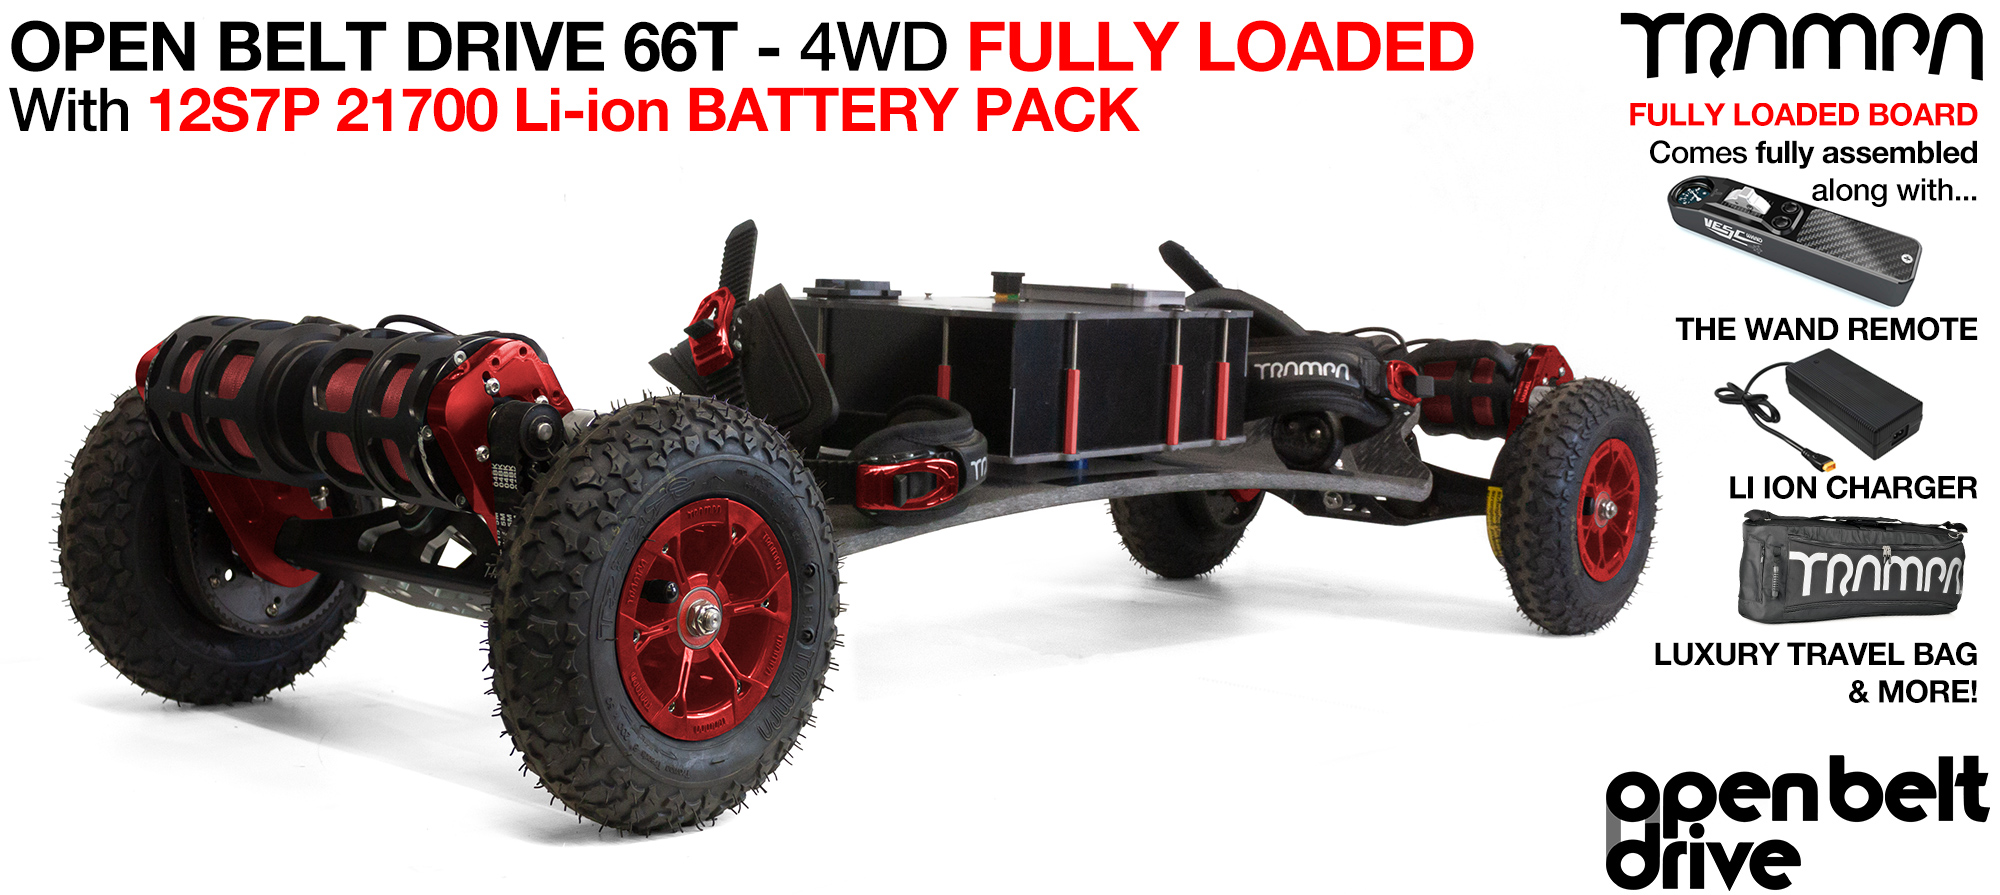 4WD 66t OPEN BELT DRIVE BIGBOI Electric TRAMPA Mountainboard - LOADED